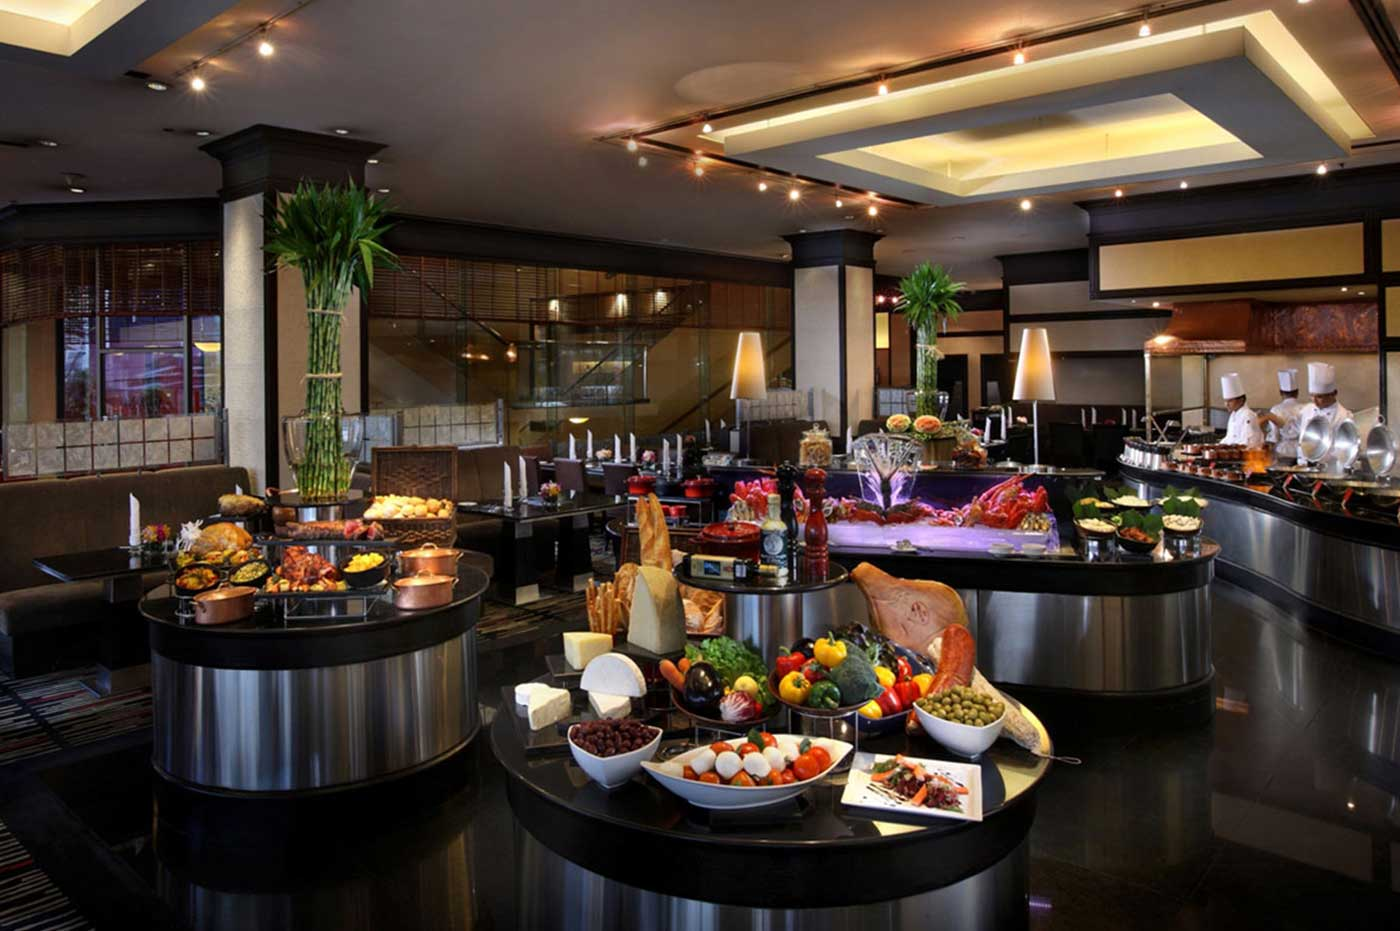 INTERNATIONAL CUISINE IN A LIVE BUFFET THEATRE